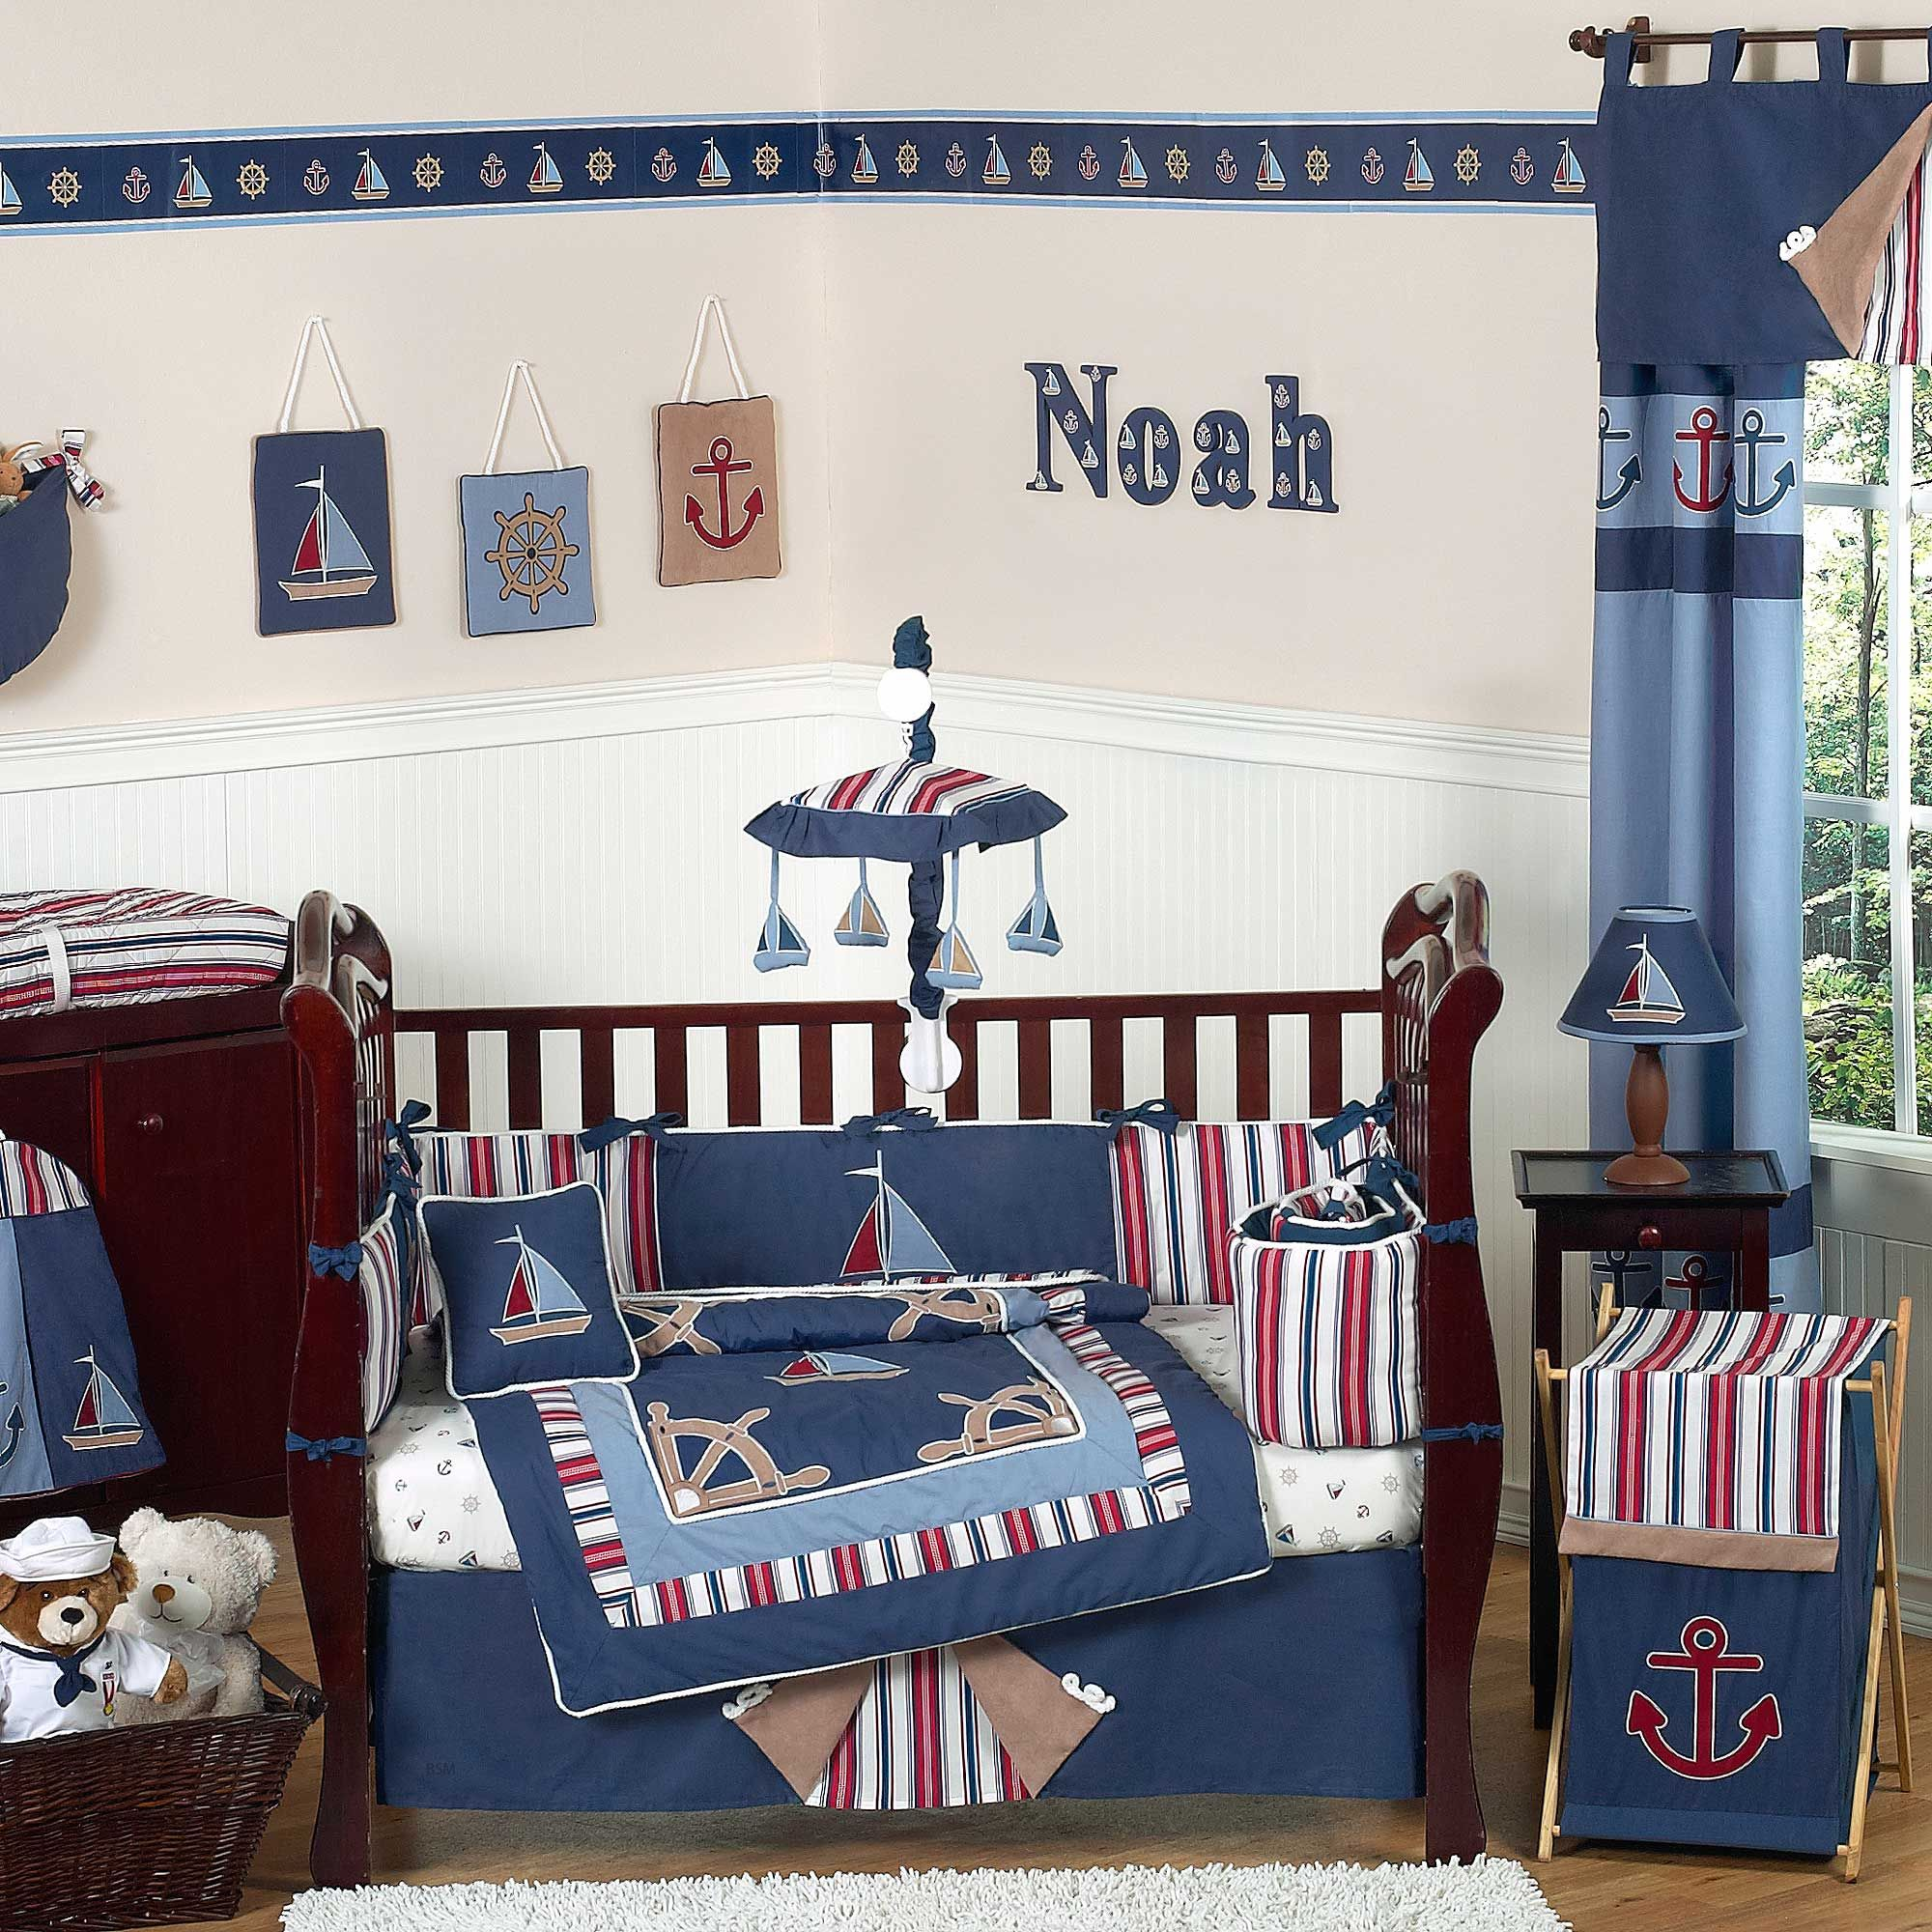 Amazing Little Boy Bedroom Design With WHite Wall Paint Color And Wooden  Floor Also Striped Motif